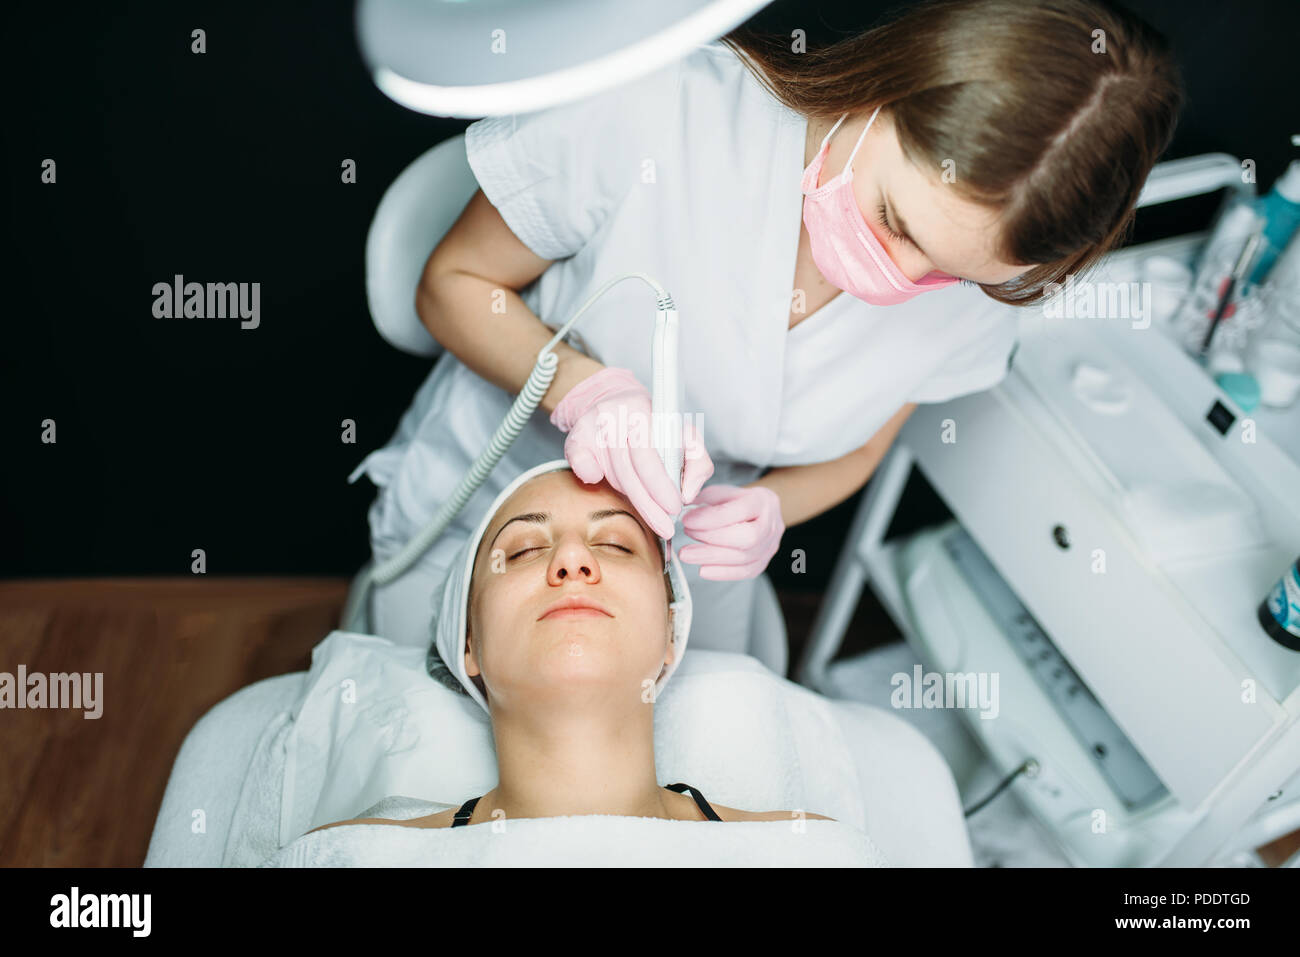 Rejuvenation procedure, getting rid of wrinkles - Stock Image